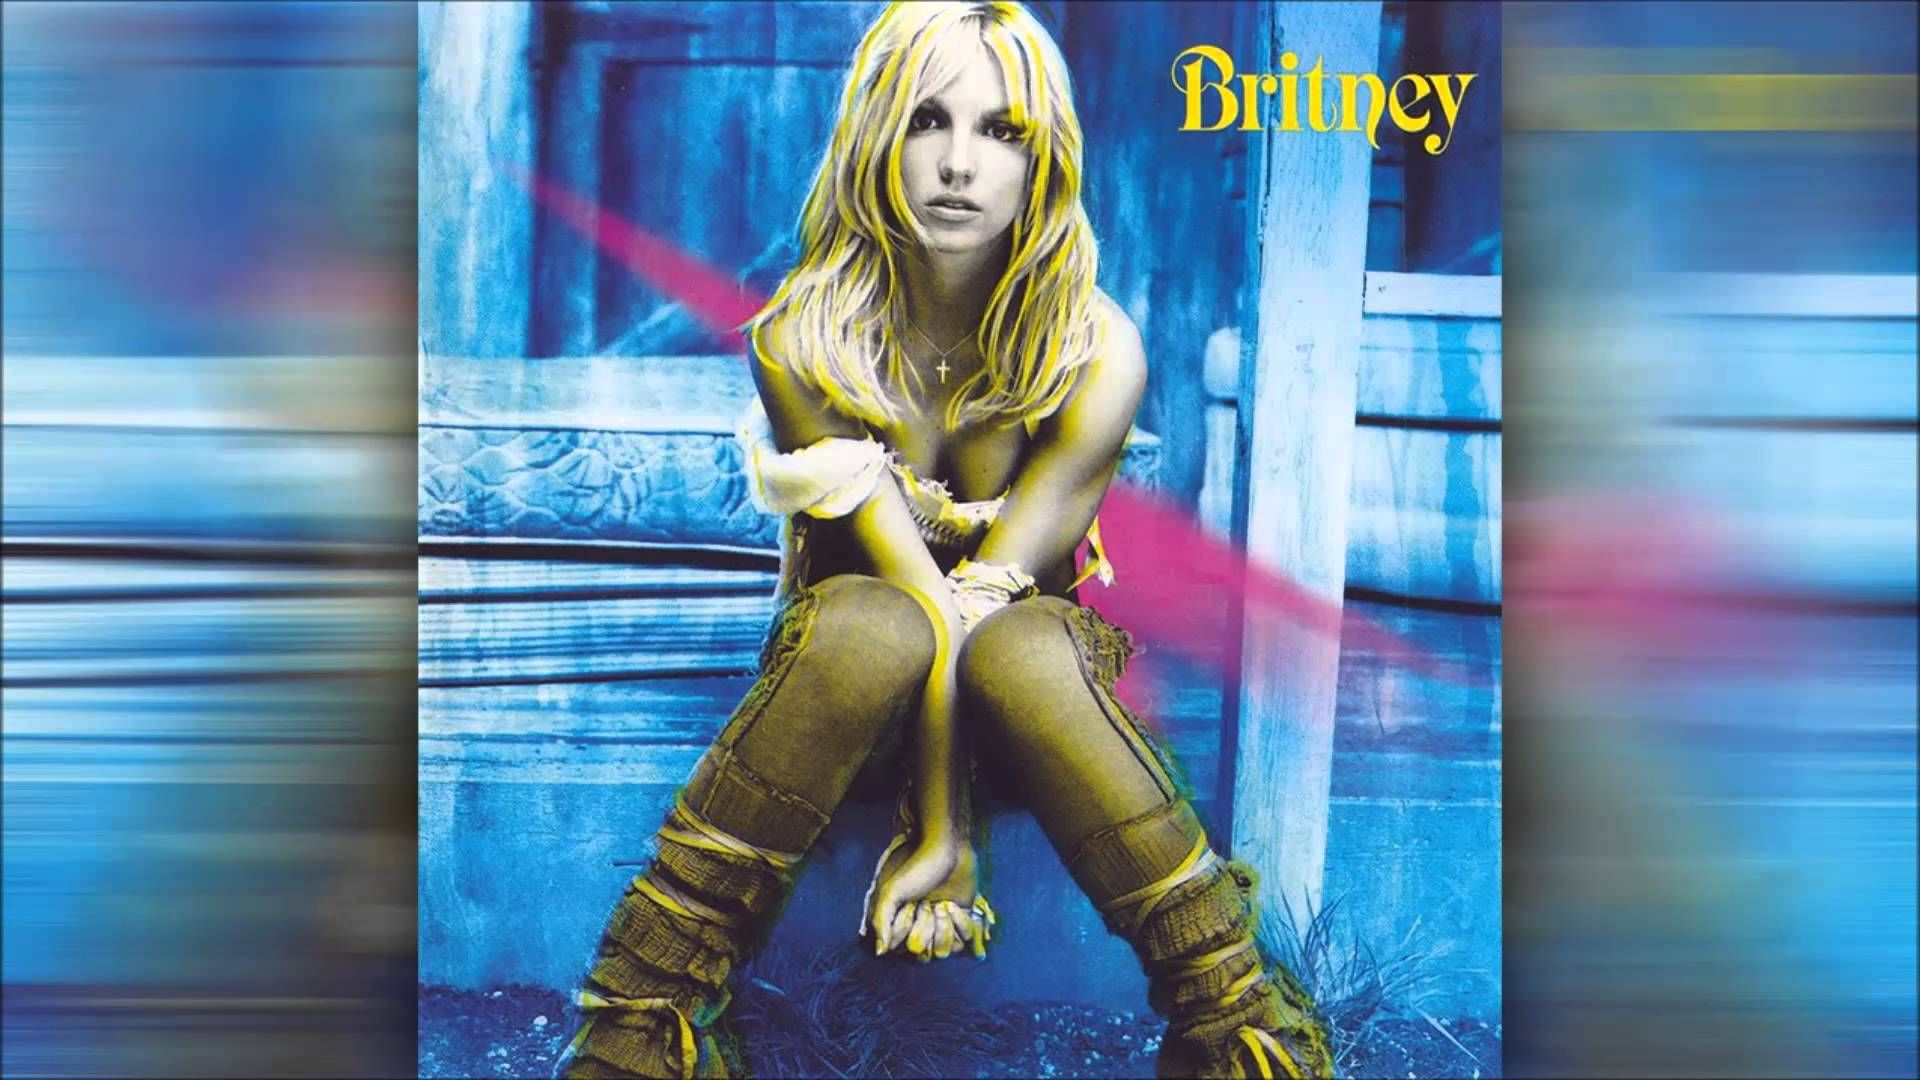 Pin On Britney Spears Freebritney